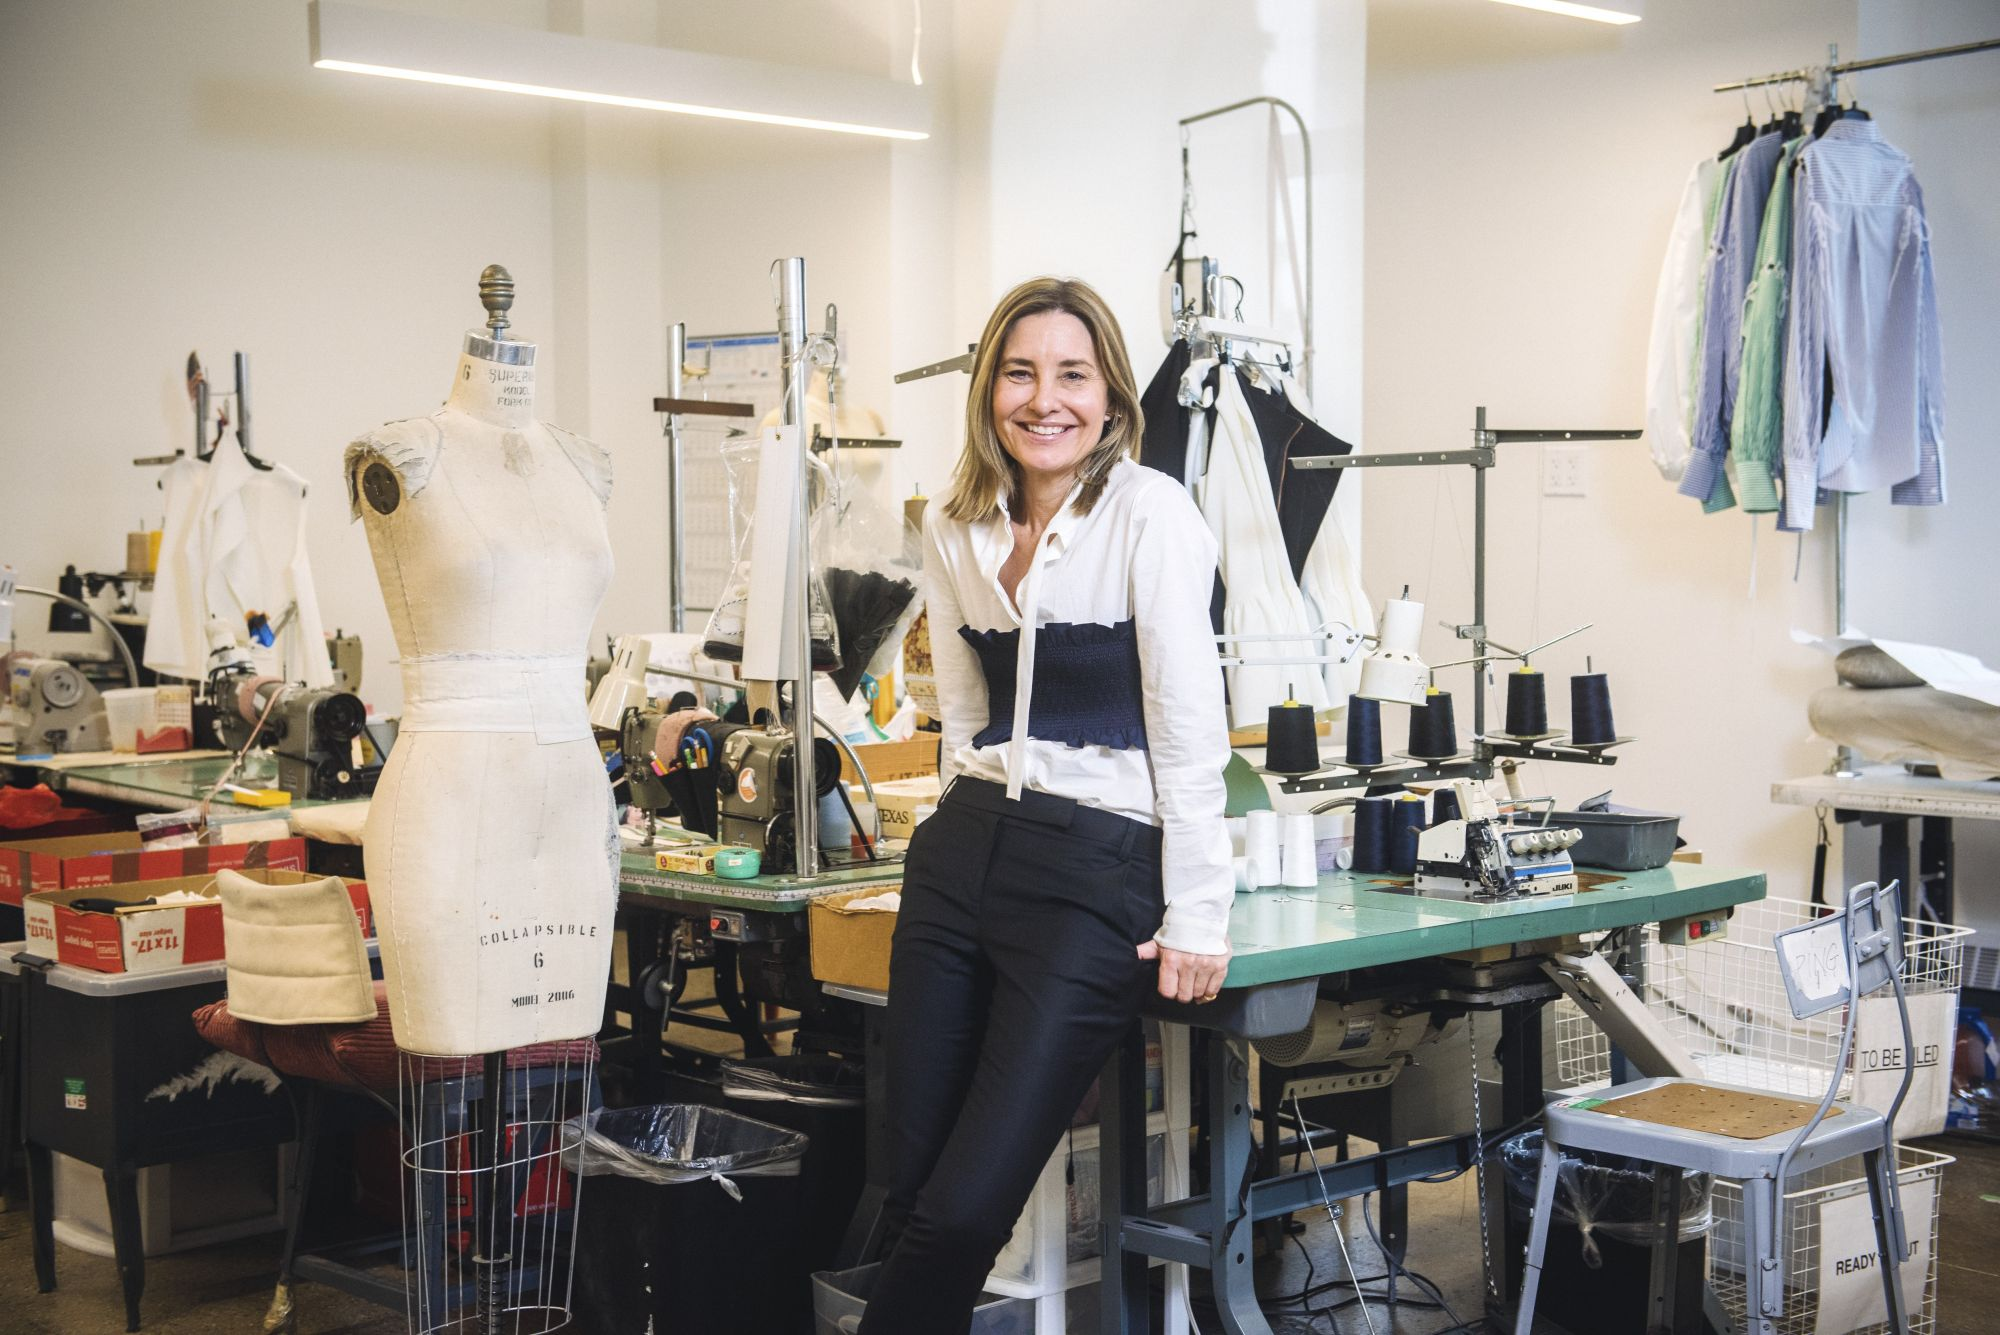 Tibi Founder Amy Smilovic's Little-Known Connection To Hong Kong